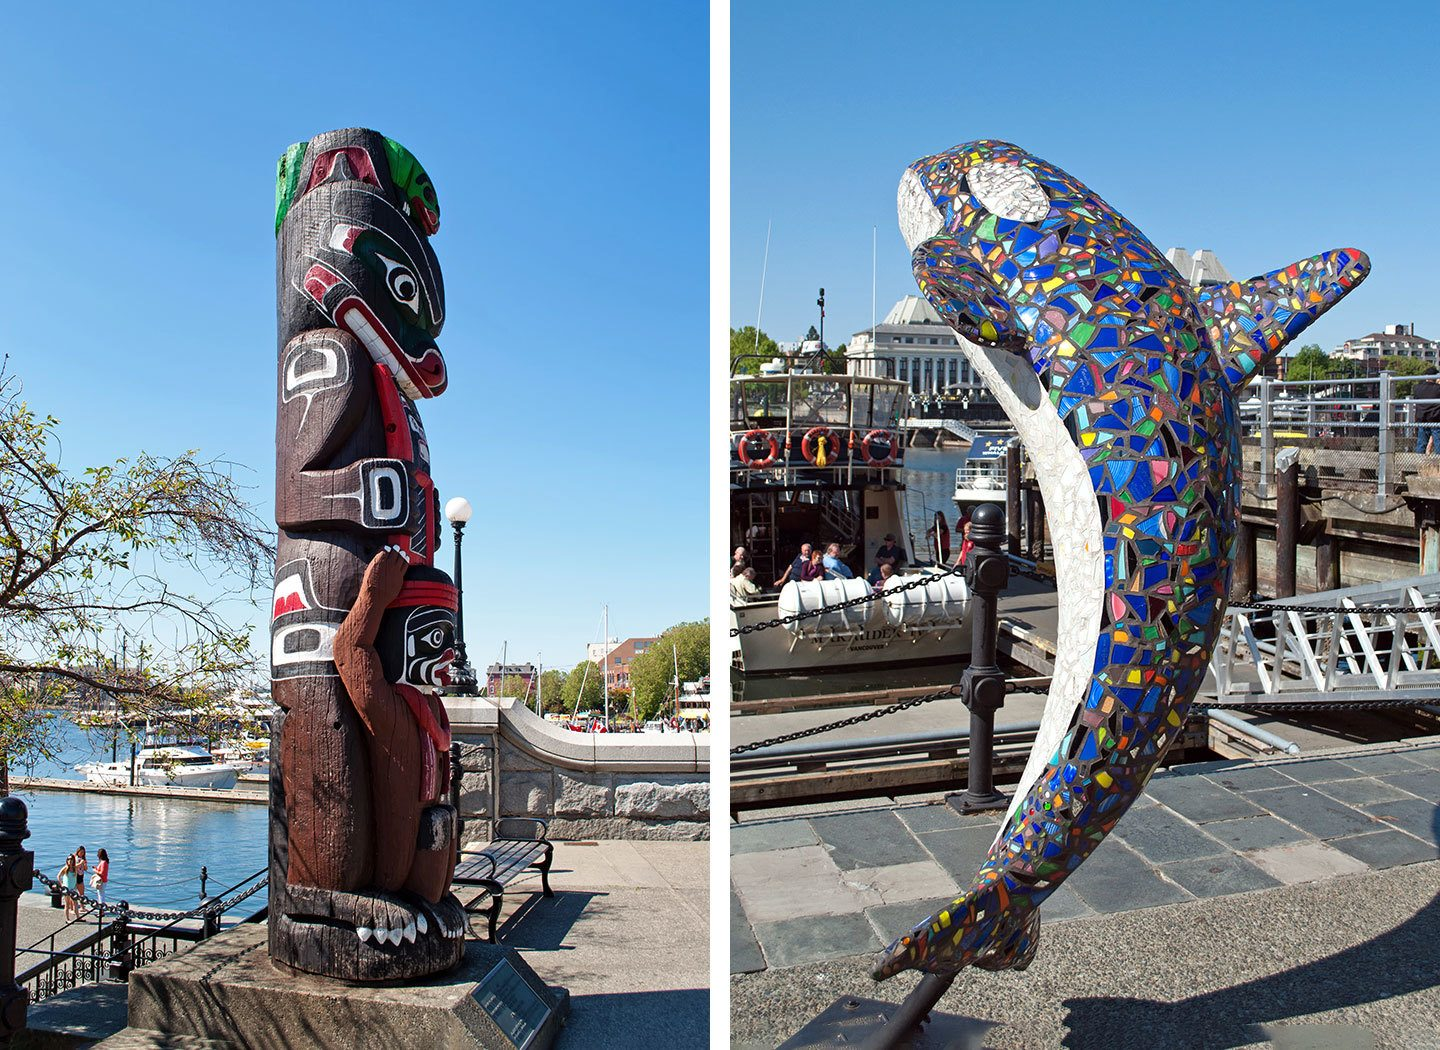 Totem pole and whale mosaic statue in Victoria Harbour, British Columbia